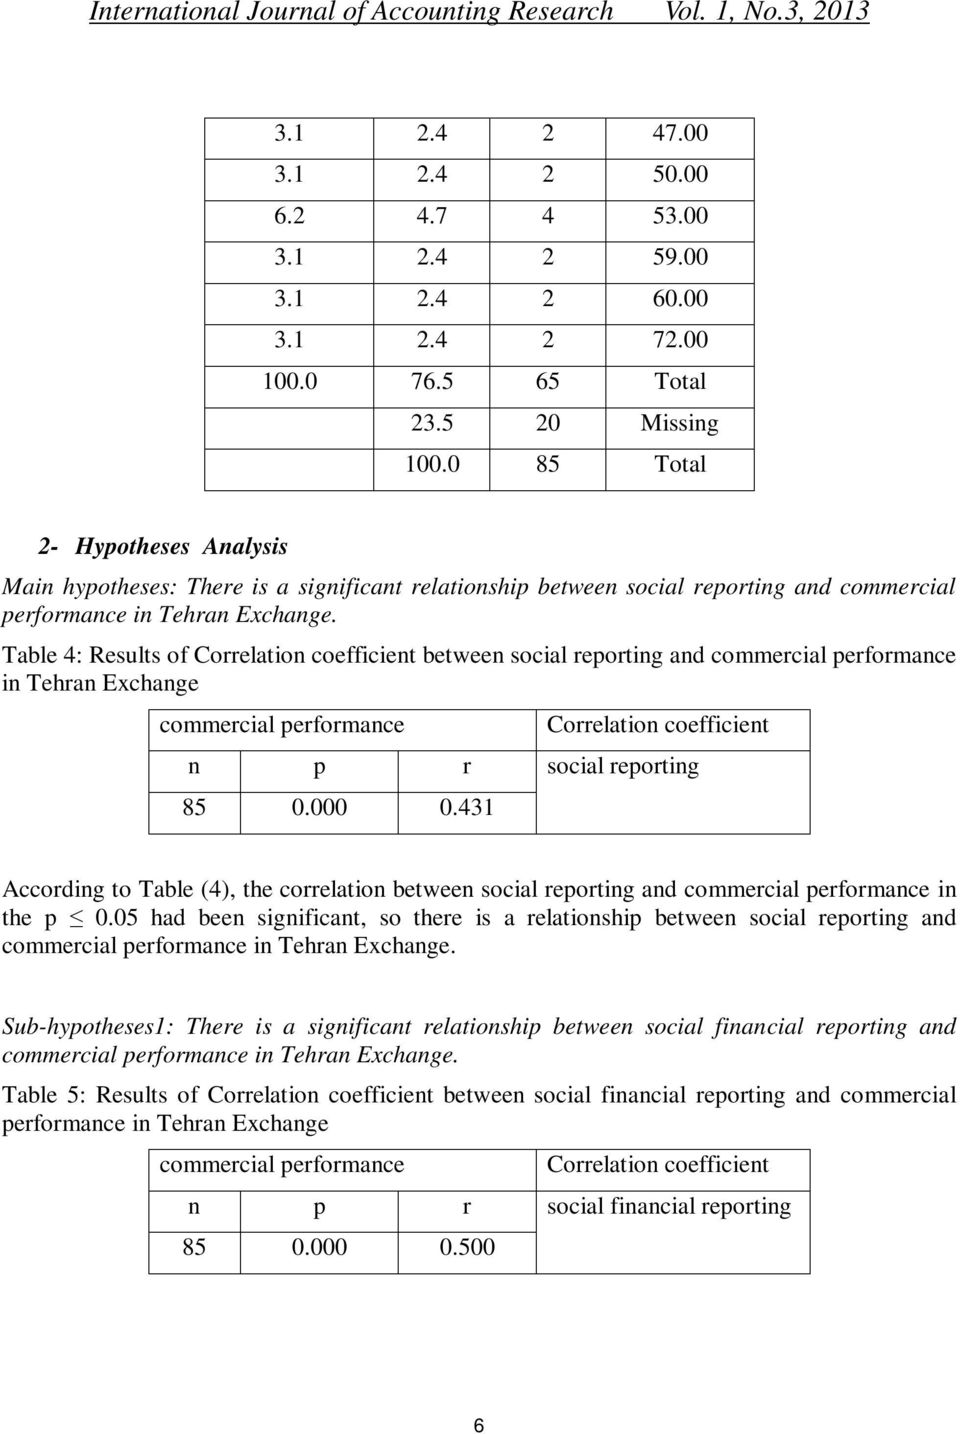 Table 4: Results of Correlation coefficient between social reporting and in Tehran Exchange n 85 p 0.000 r 0.